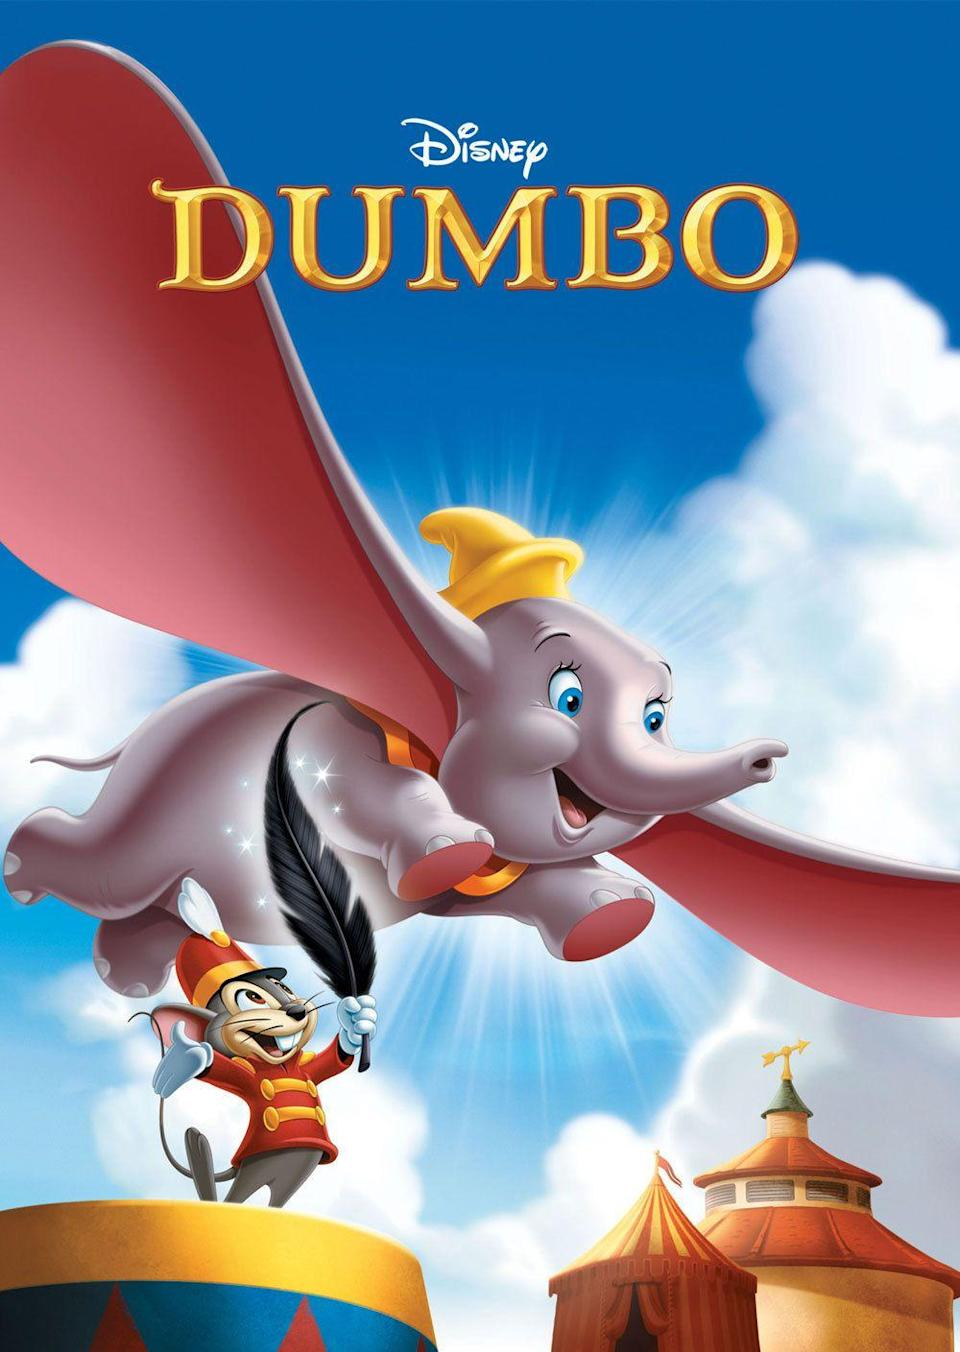 """<p>Tim Burton's adaptation of <em>Dumbo</em> was just as dark as his previous films. While the remake isn't as colorful as the original, seeing Dumbo take flight for the first time is absolutely breathtaking and you'll find yourself crying just as hard at this Disney tearjerker. <br></p><p><a class=""""link rapid-noclick-resp"""" href=""""https://www.amazon.com/Dumbo-Herman-Bing/dp/B004IAFBAM/?tag=syn-yahoo-20&ascsubtag=%5Bartid%7C10065.g.2936%5Bsrc%7Cyahoo-us"""" rel=""""nofollow noopener"""" target=""""_blank"""" data-ylk=""""slk:Watch the Original"""">Watch the Original</a></p>"""